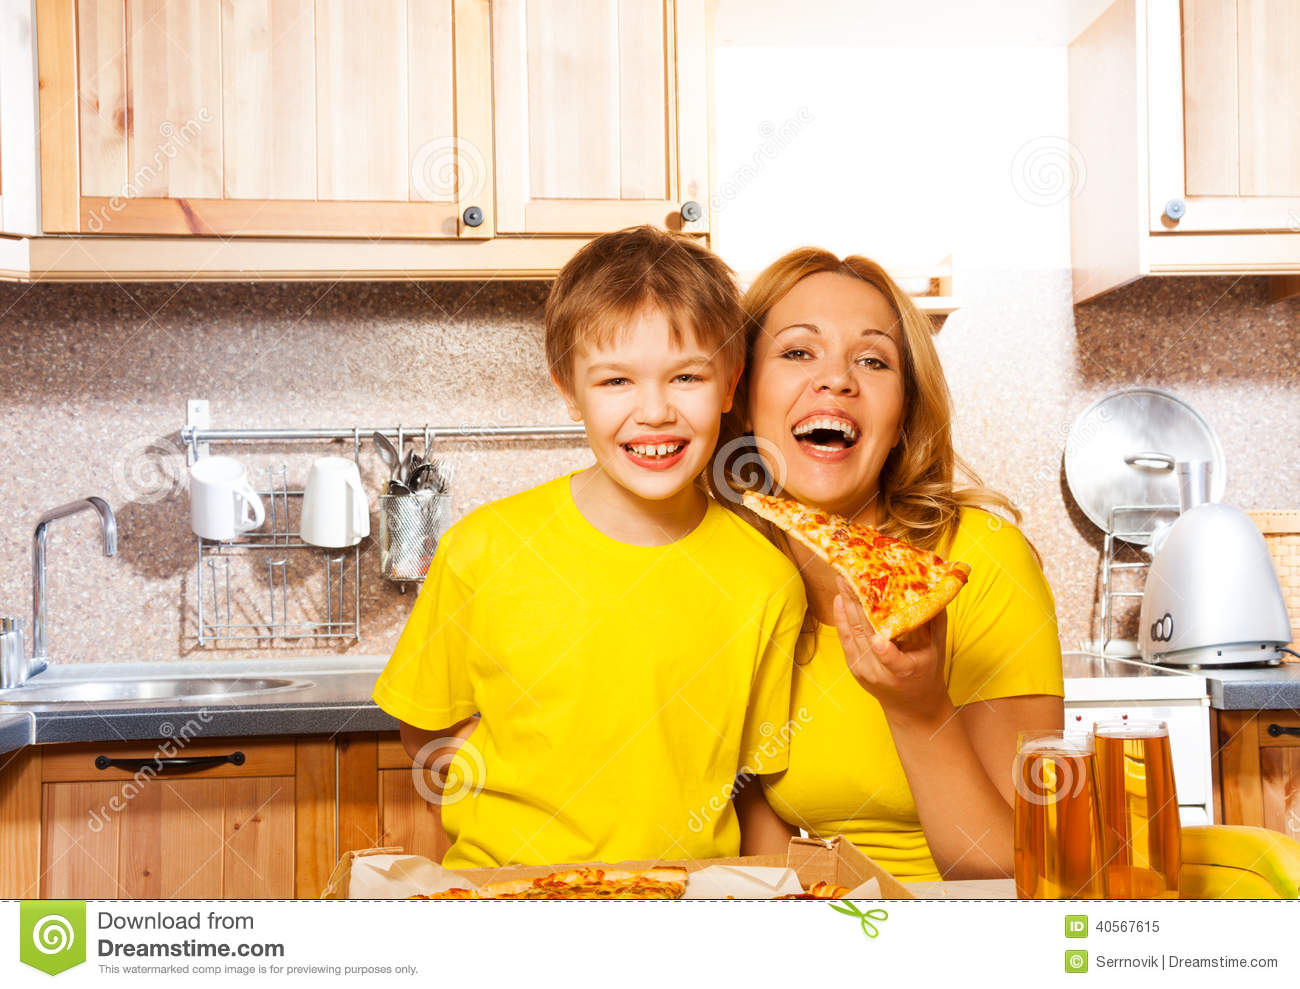 Son and laughing mother holding slice of pizza